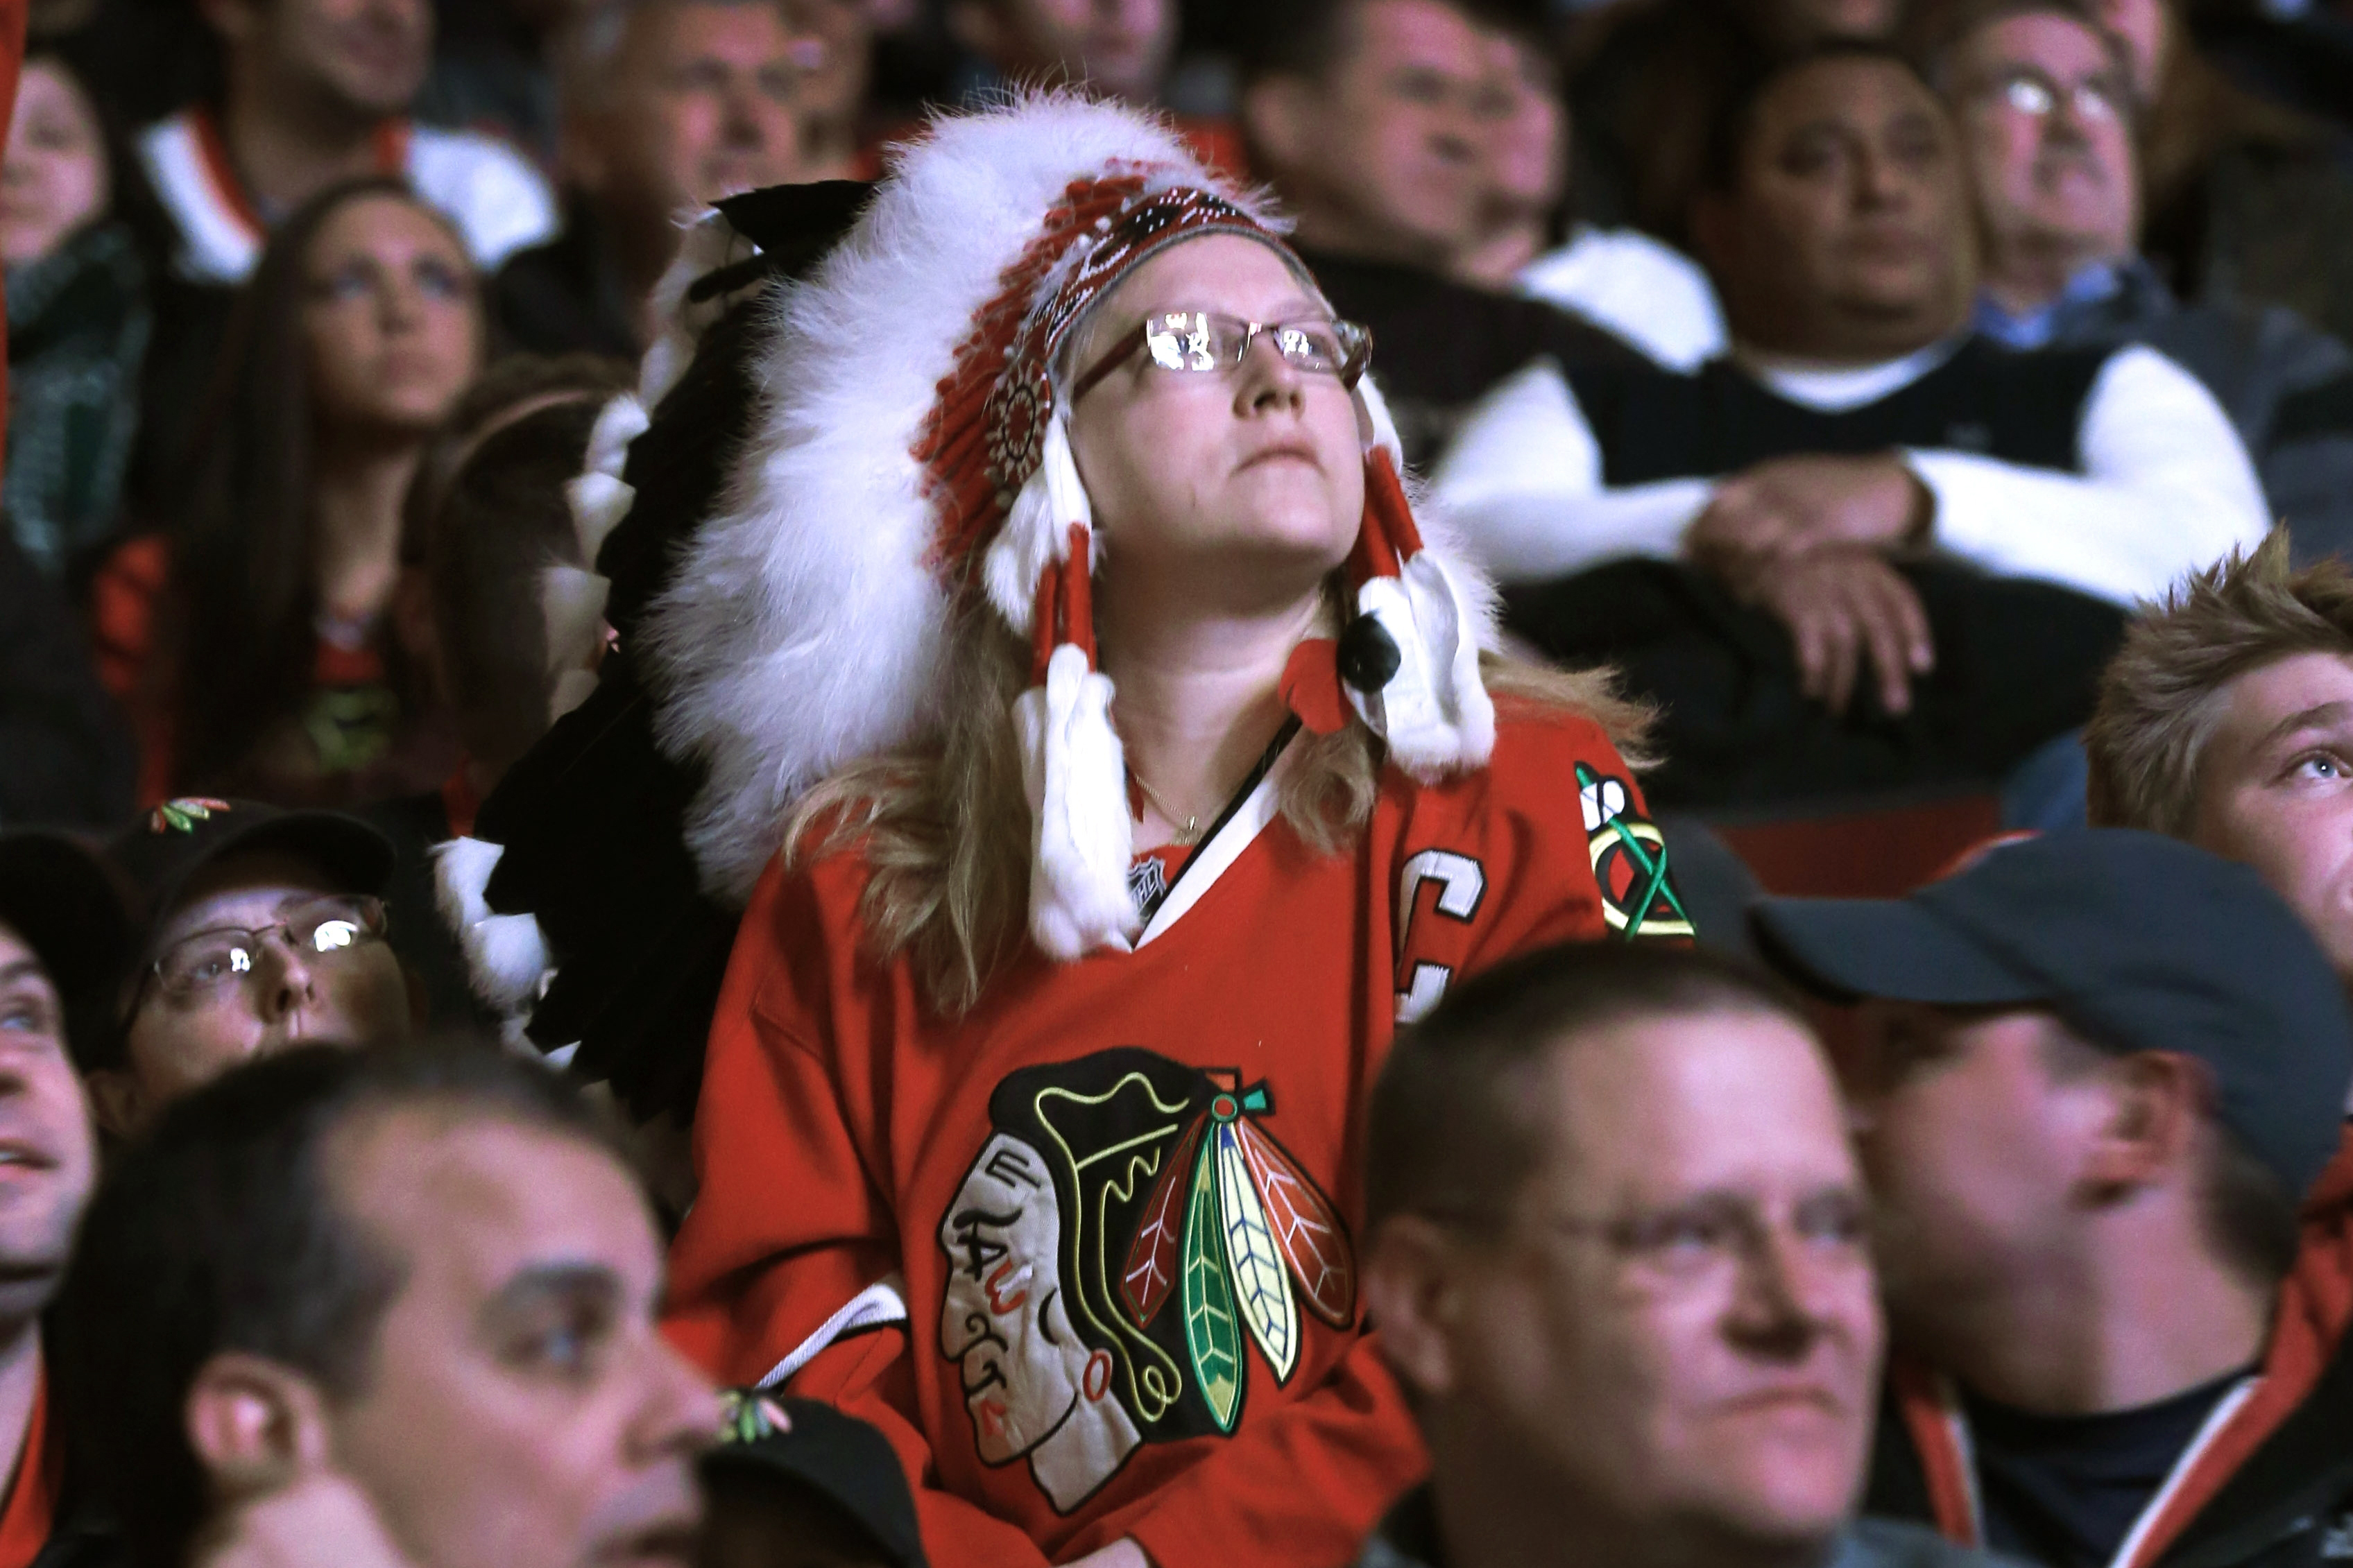 The Blackhawks will ban headdresses, such as the one worn by this fan in this 2013 photo, at future games.